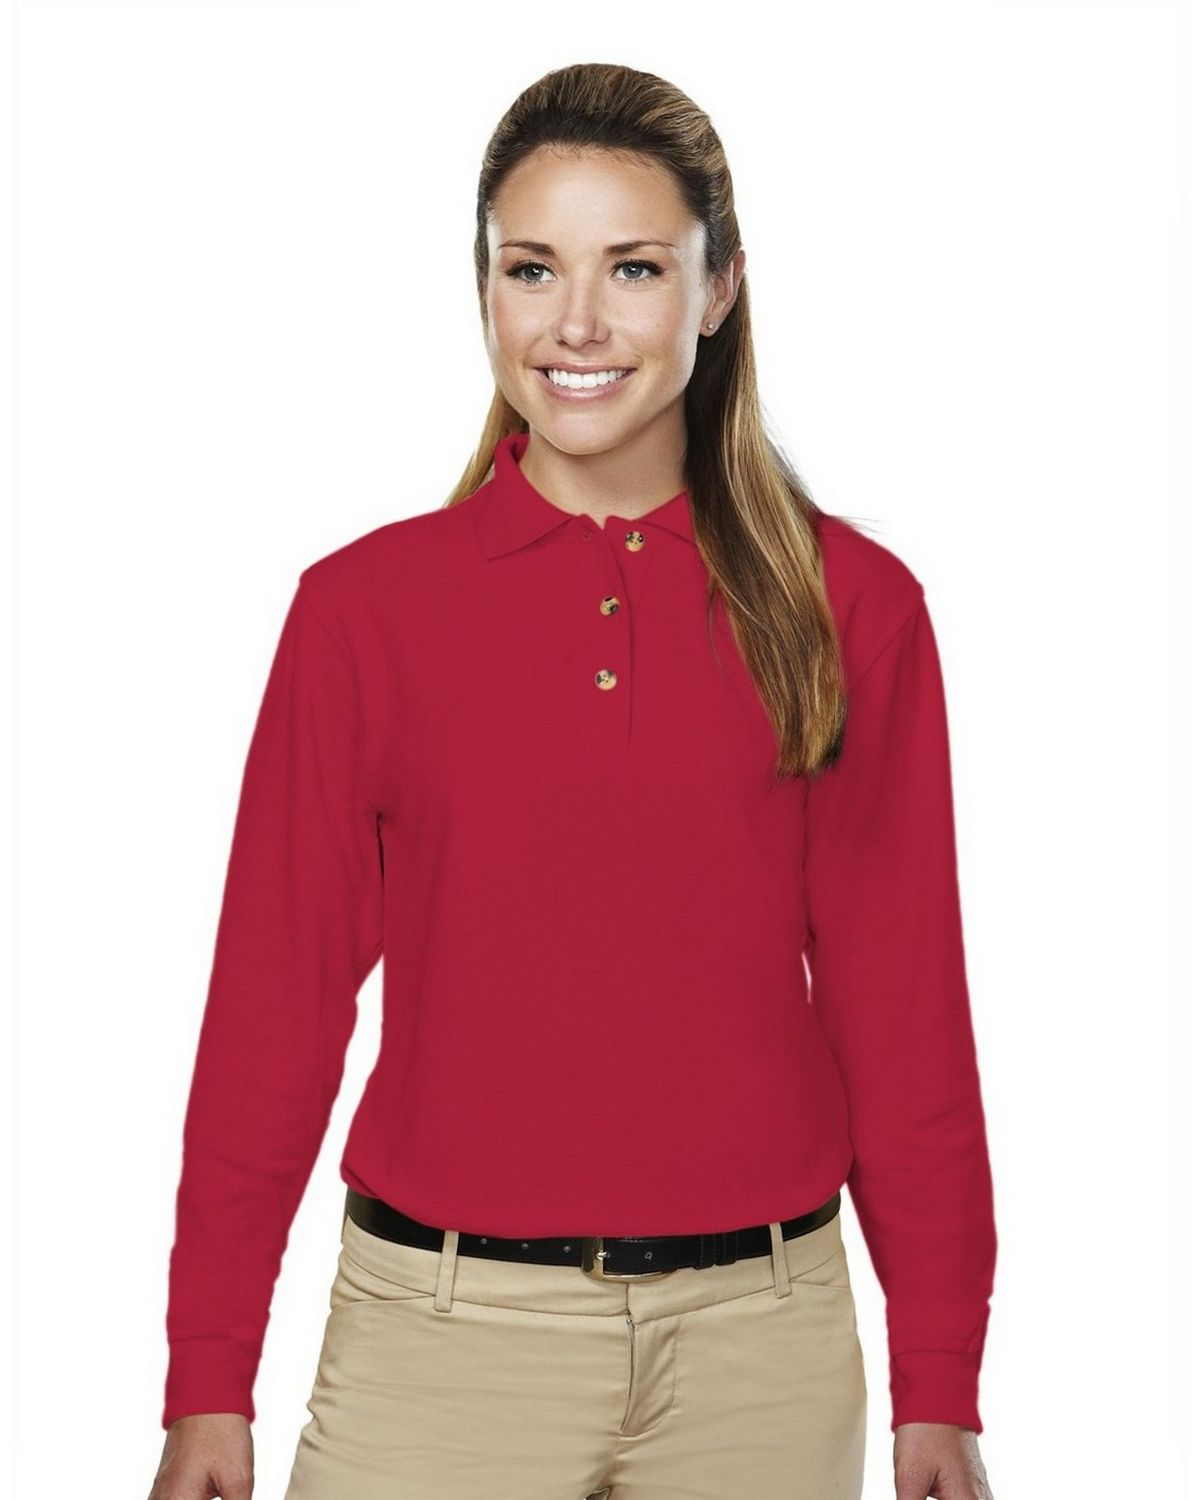 Tri-Mountain 602 Victory Golf Shirt - Red - L 602